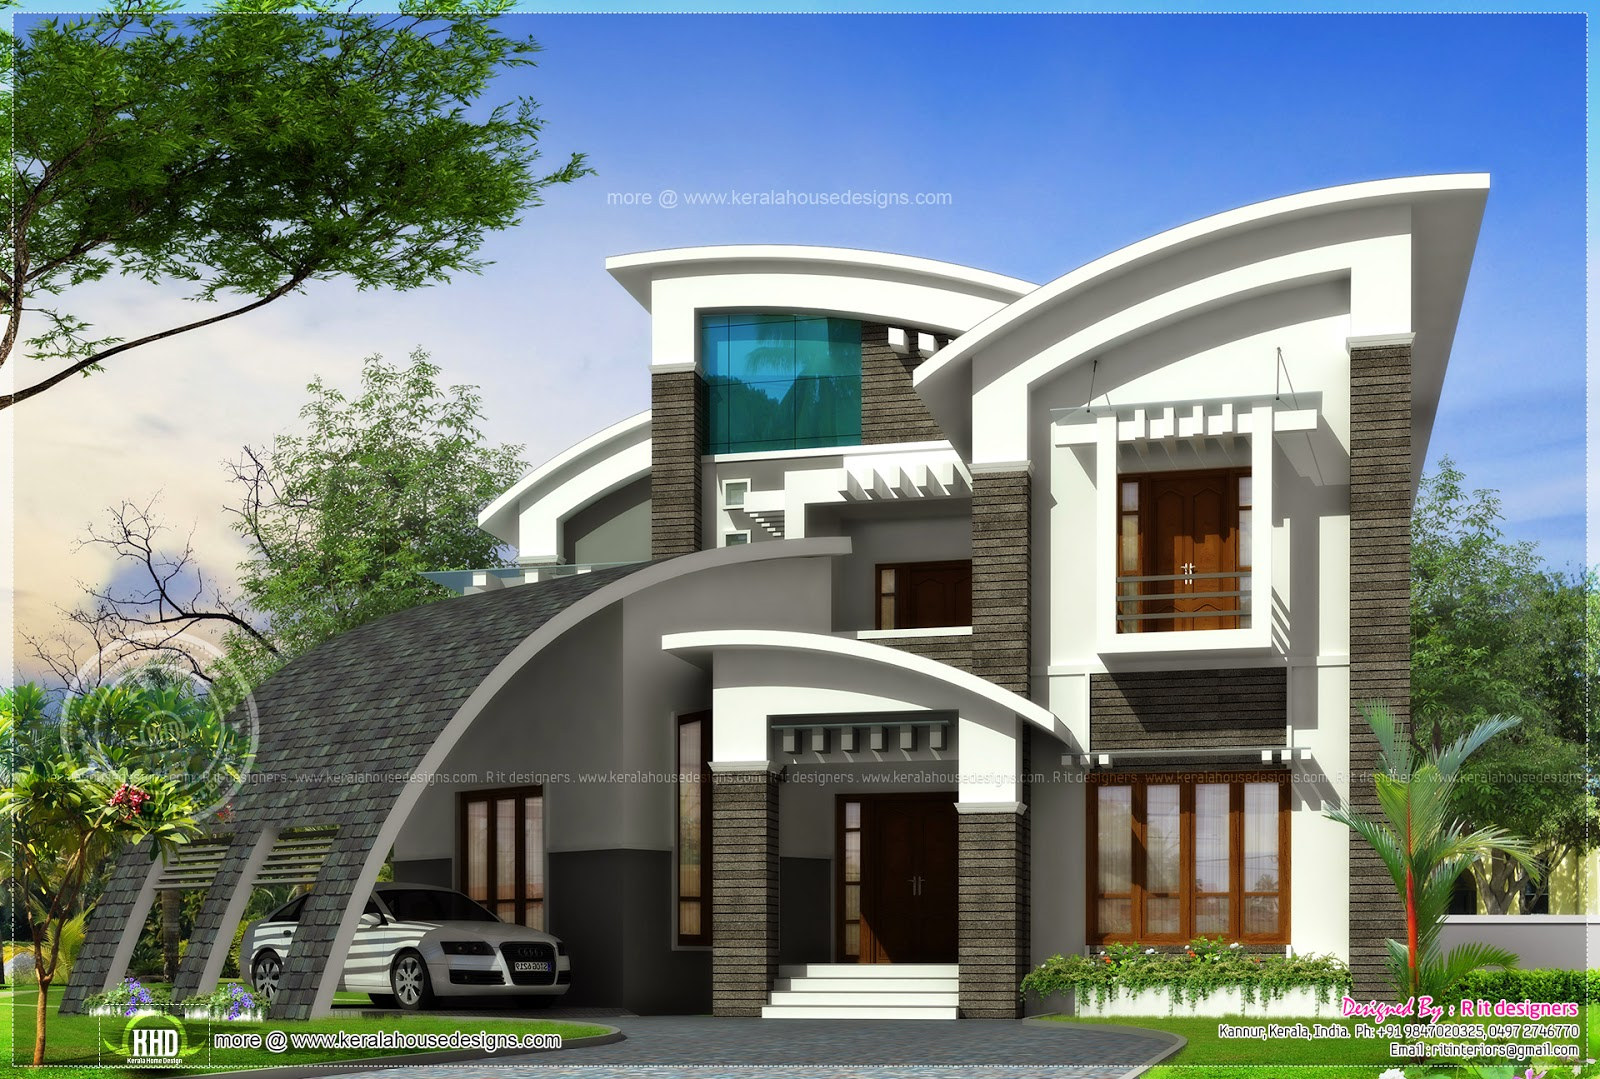 Super luxury ultra modern house design kerala home for Ultra modern home plans